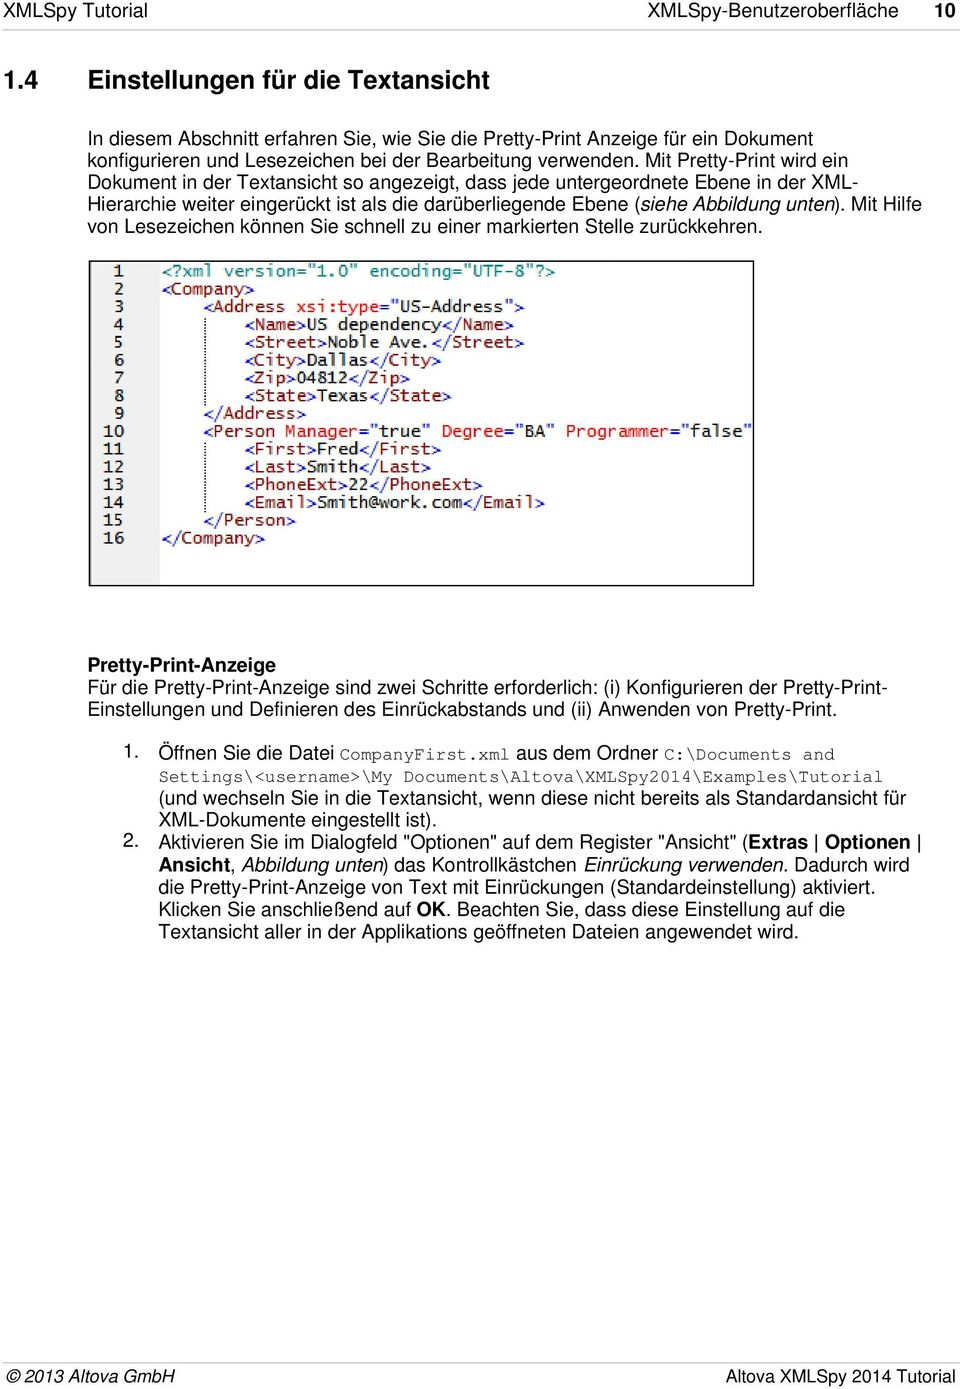 html and xml tutorial pdf